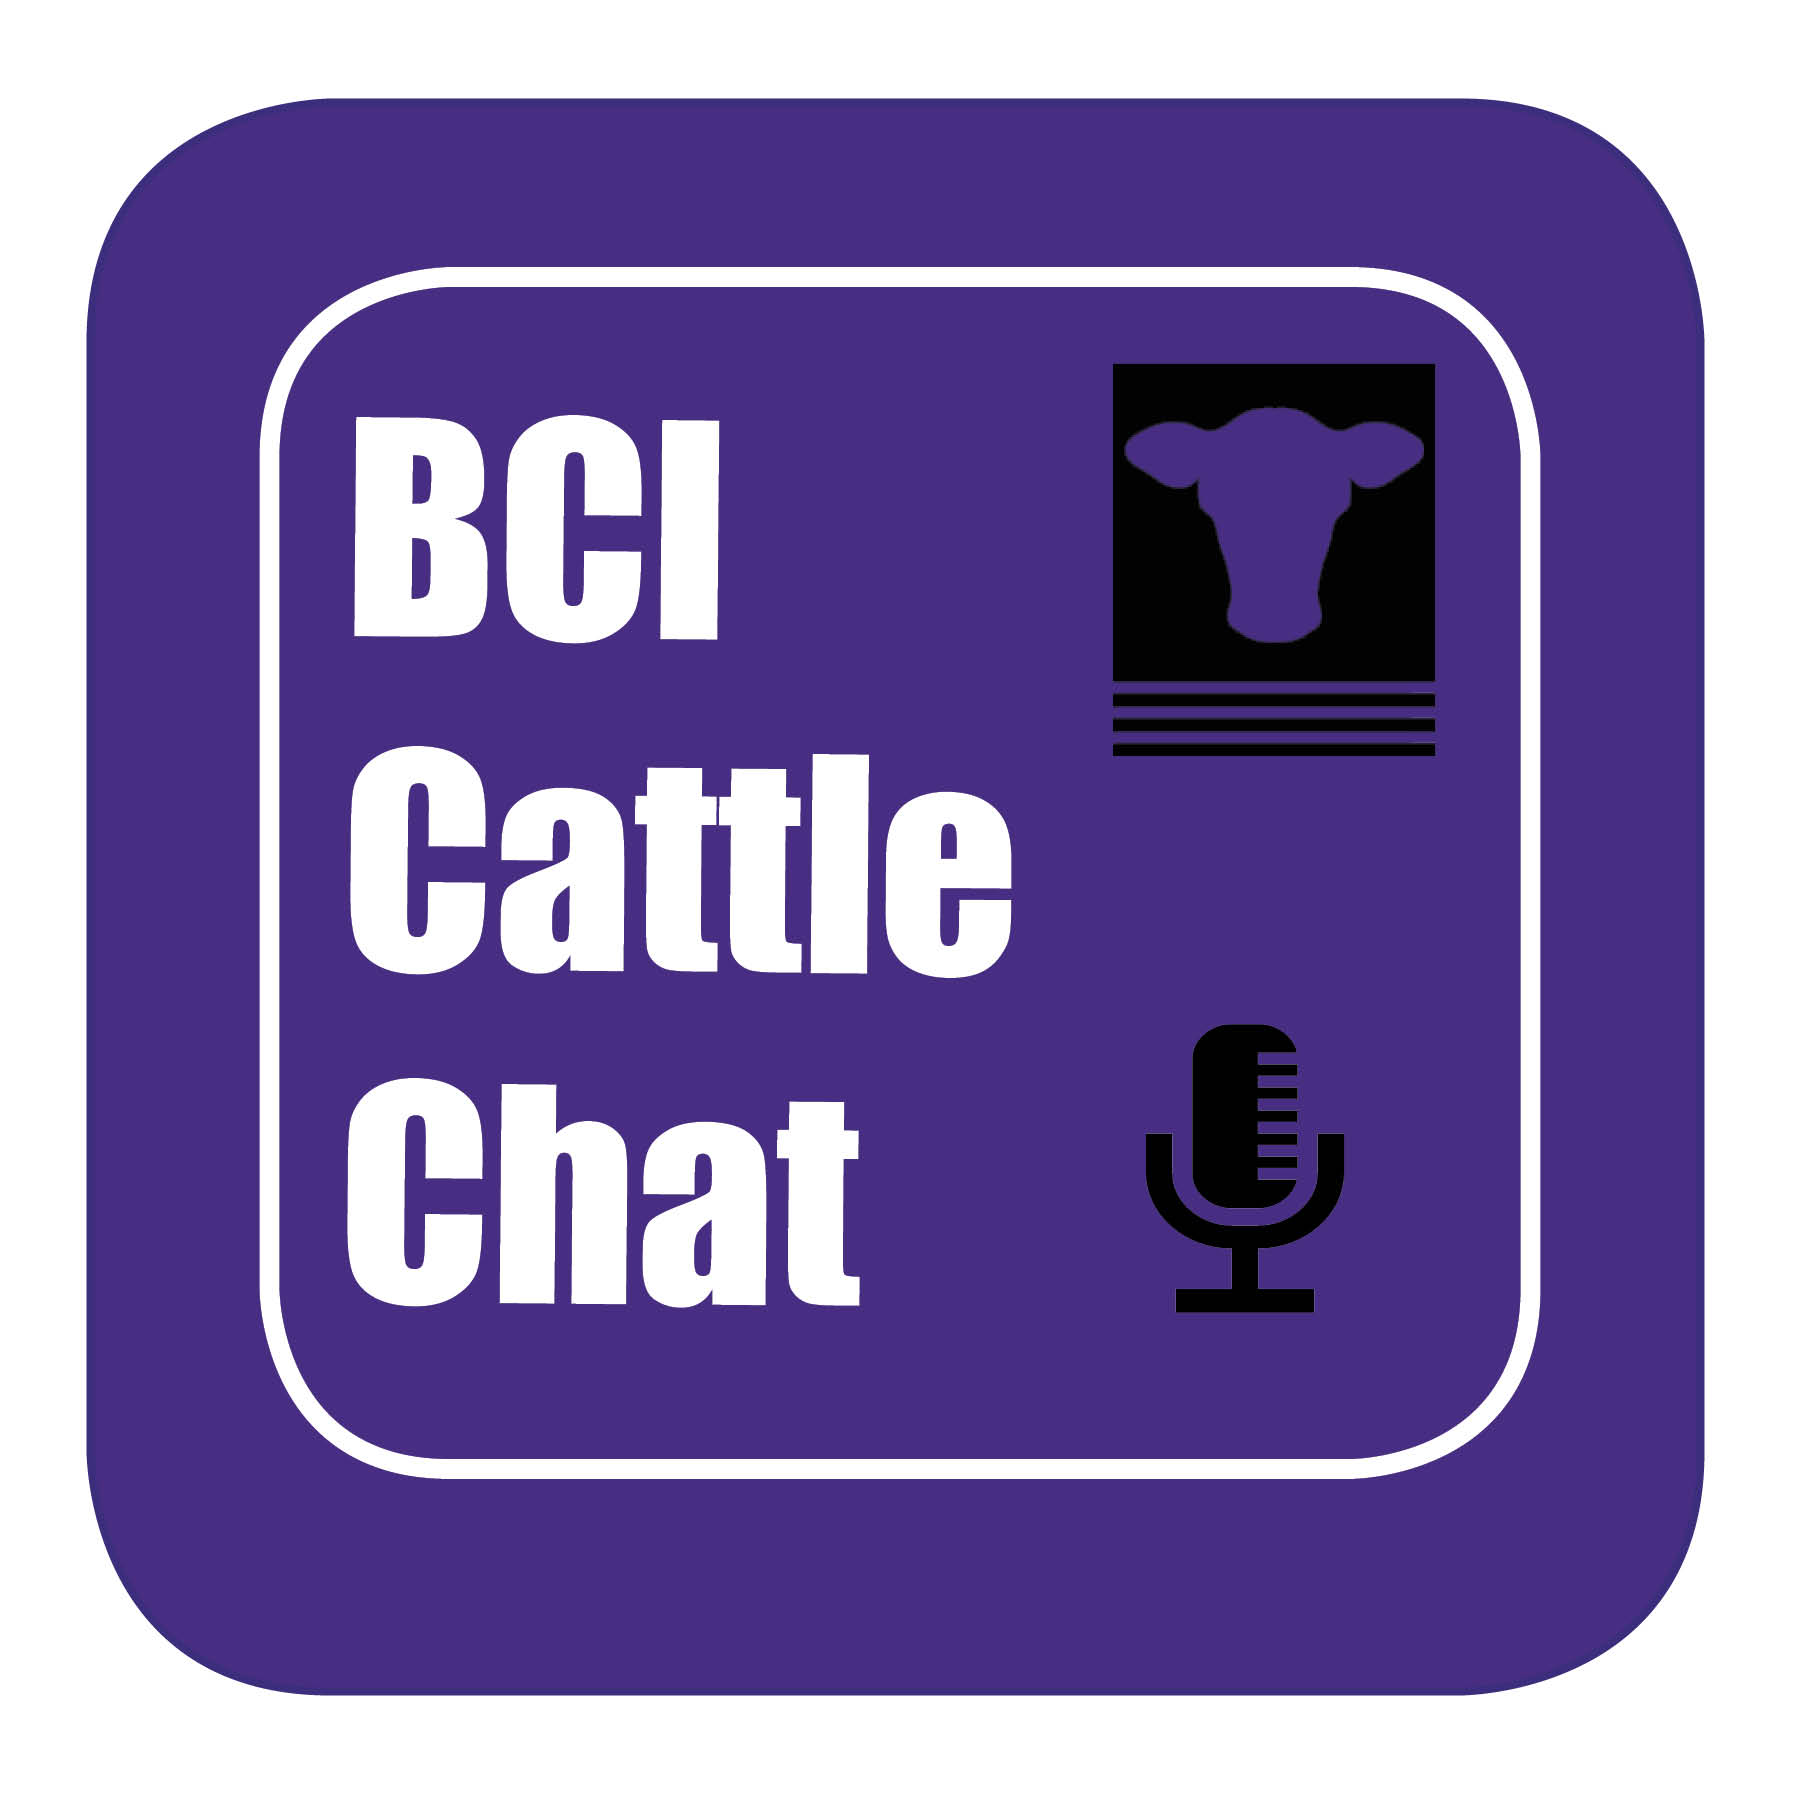 BCI Cattle Chat - Episode 2